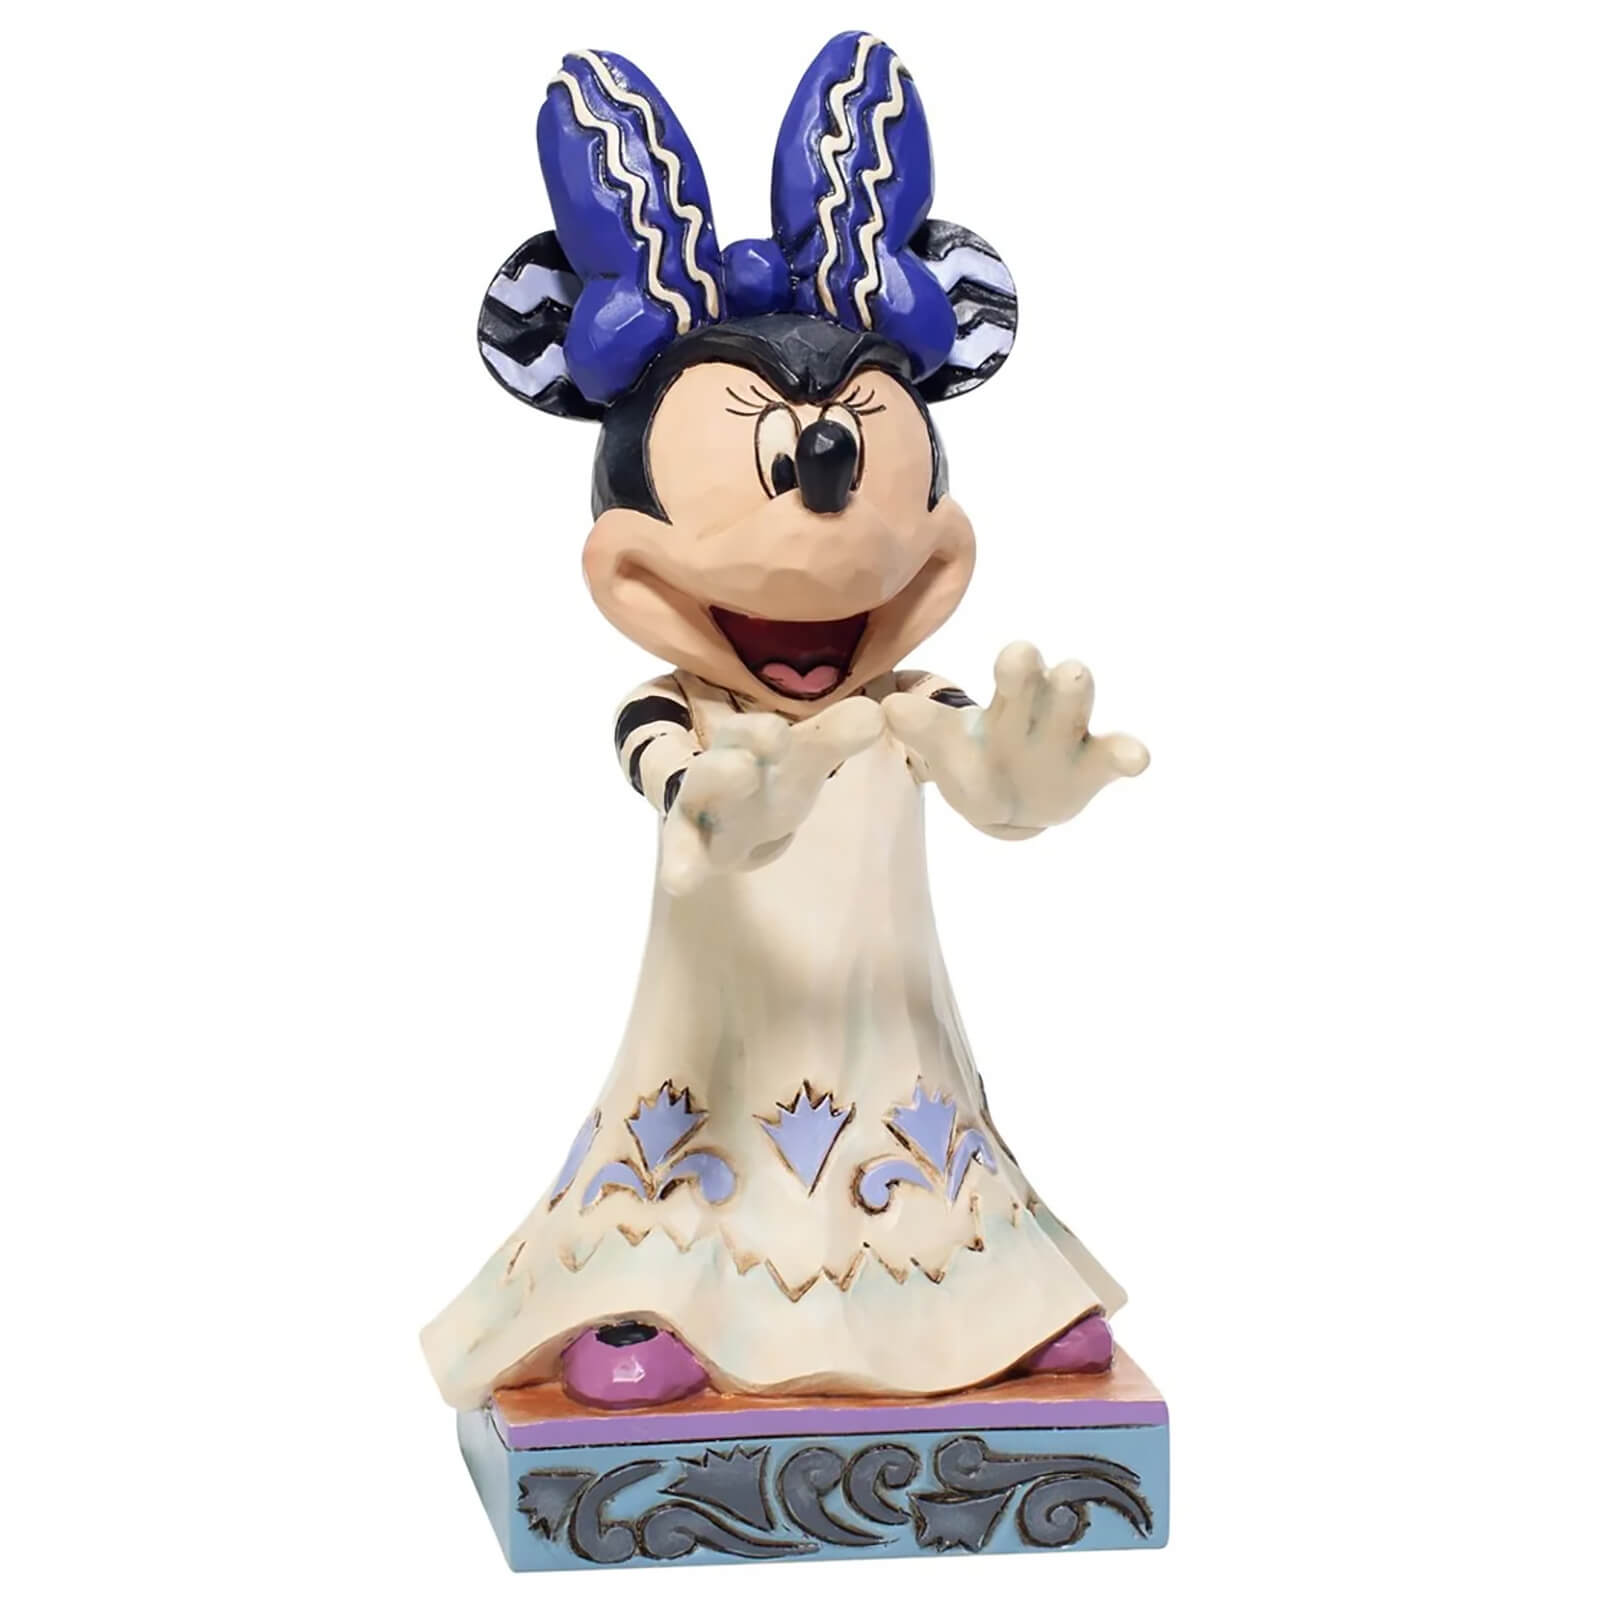 Image of Disney Traditions Halloween Minnie Mouse Figurine 13.5cm